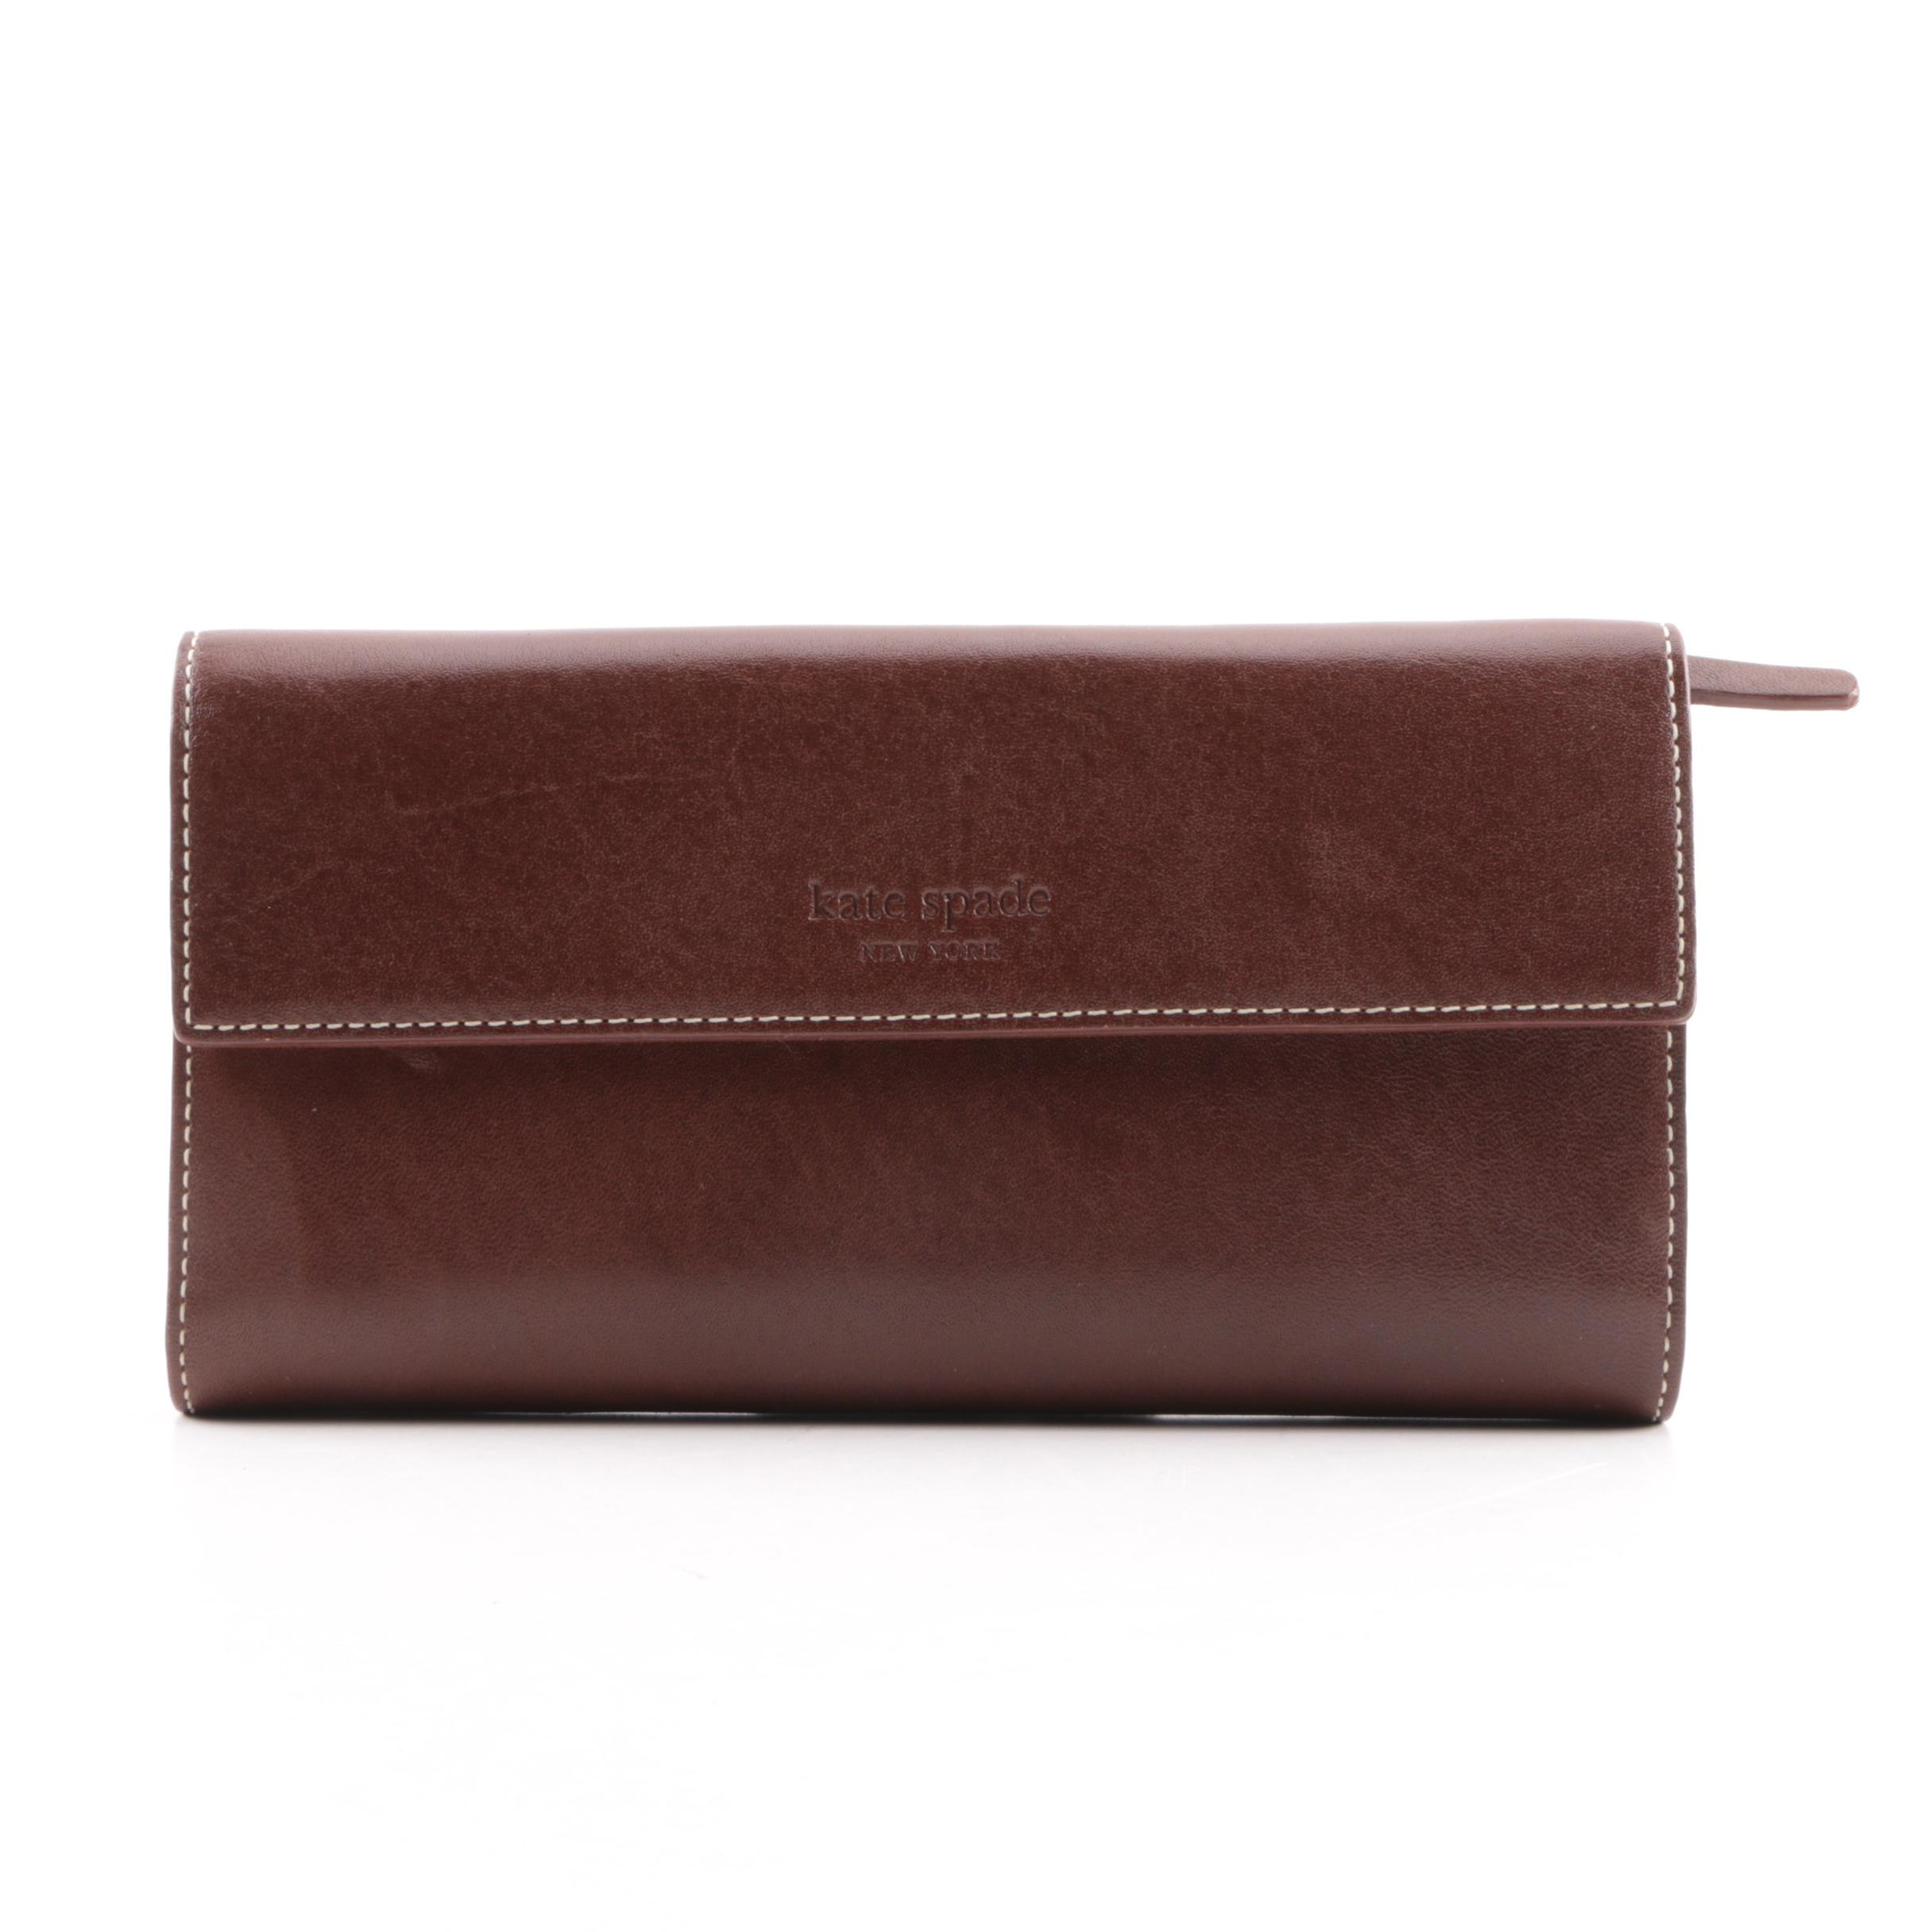 Kate Spade New York Brown Leather Wallet